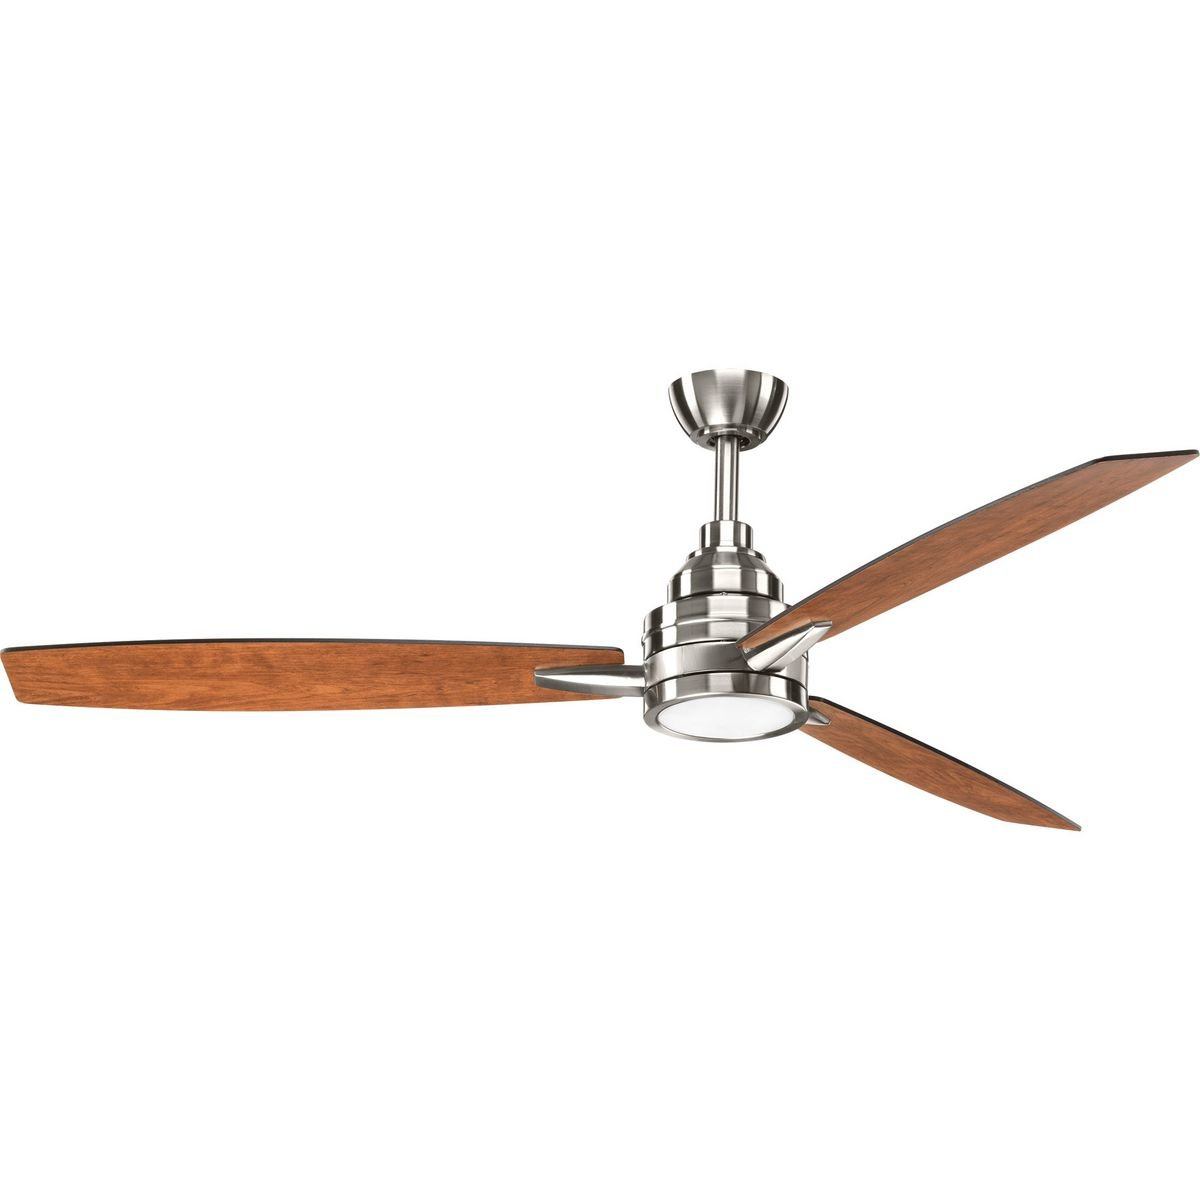 "Rudolph 3 Blade Ceiling Fans Intended For Well Liked 60"" Troy 3 Blade Led Ceiling Fan With Remote, Light Kit Included (View 10 of 20)"